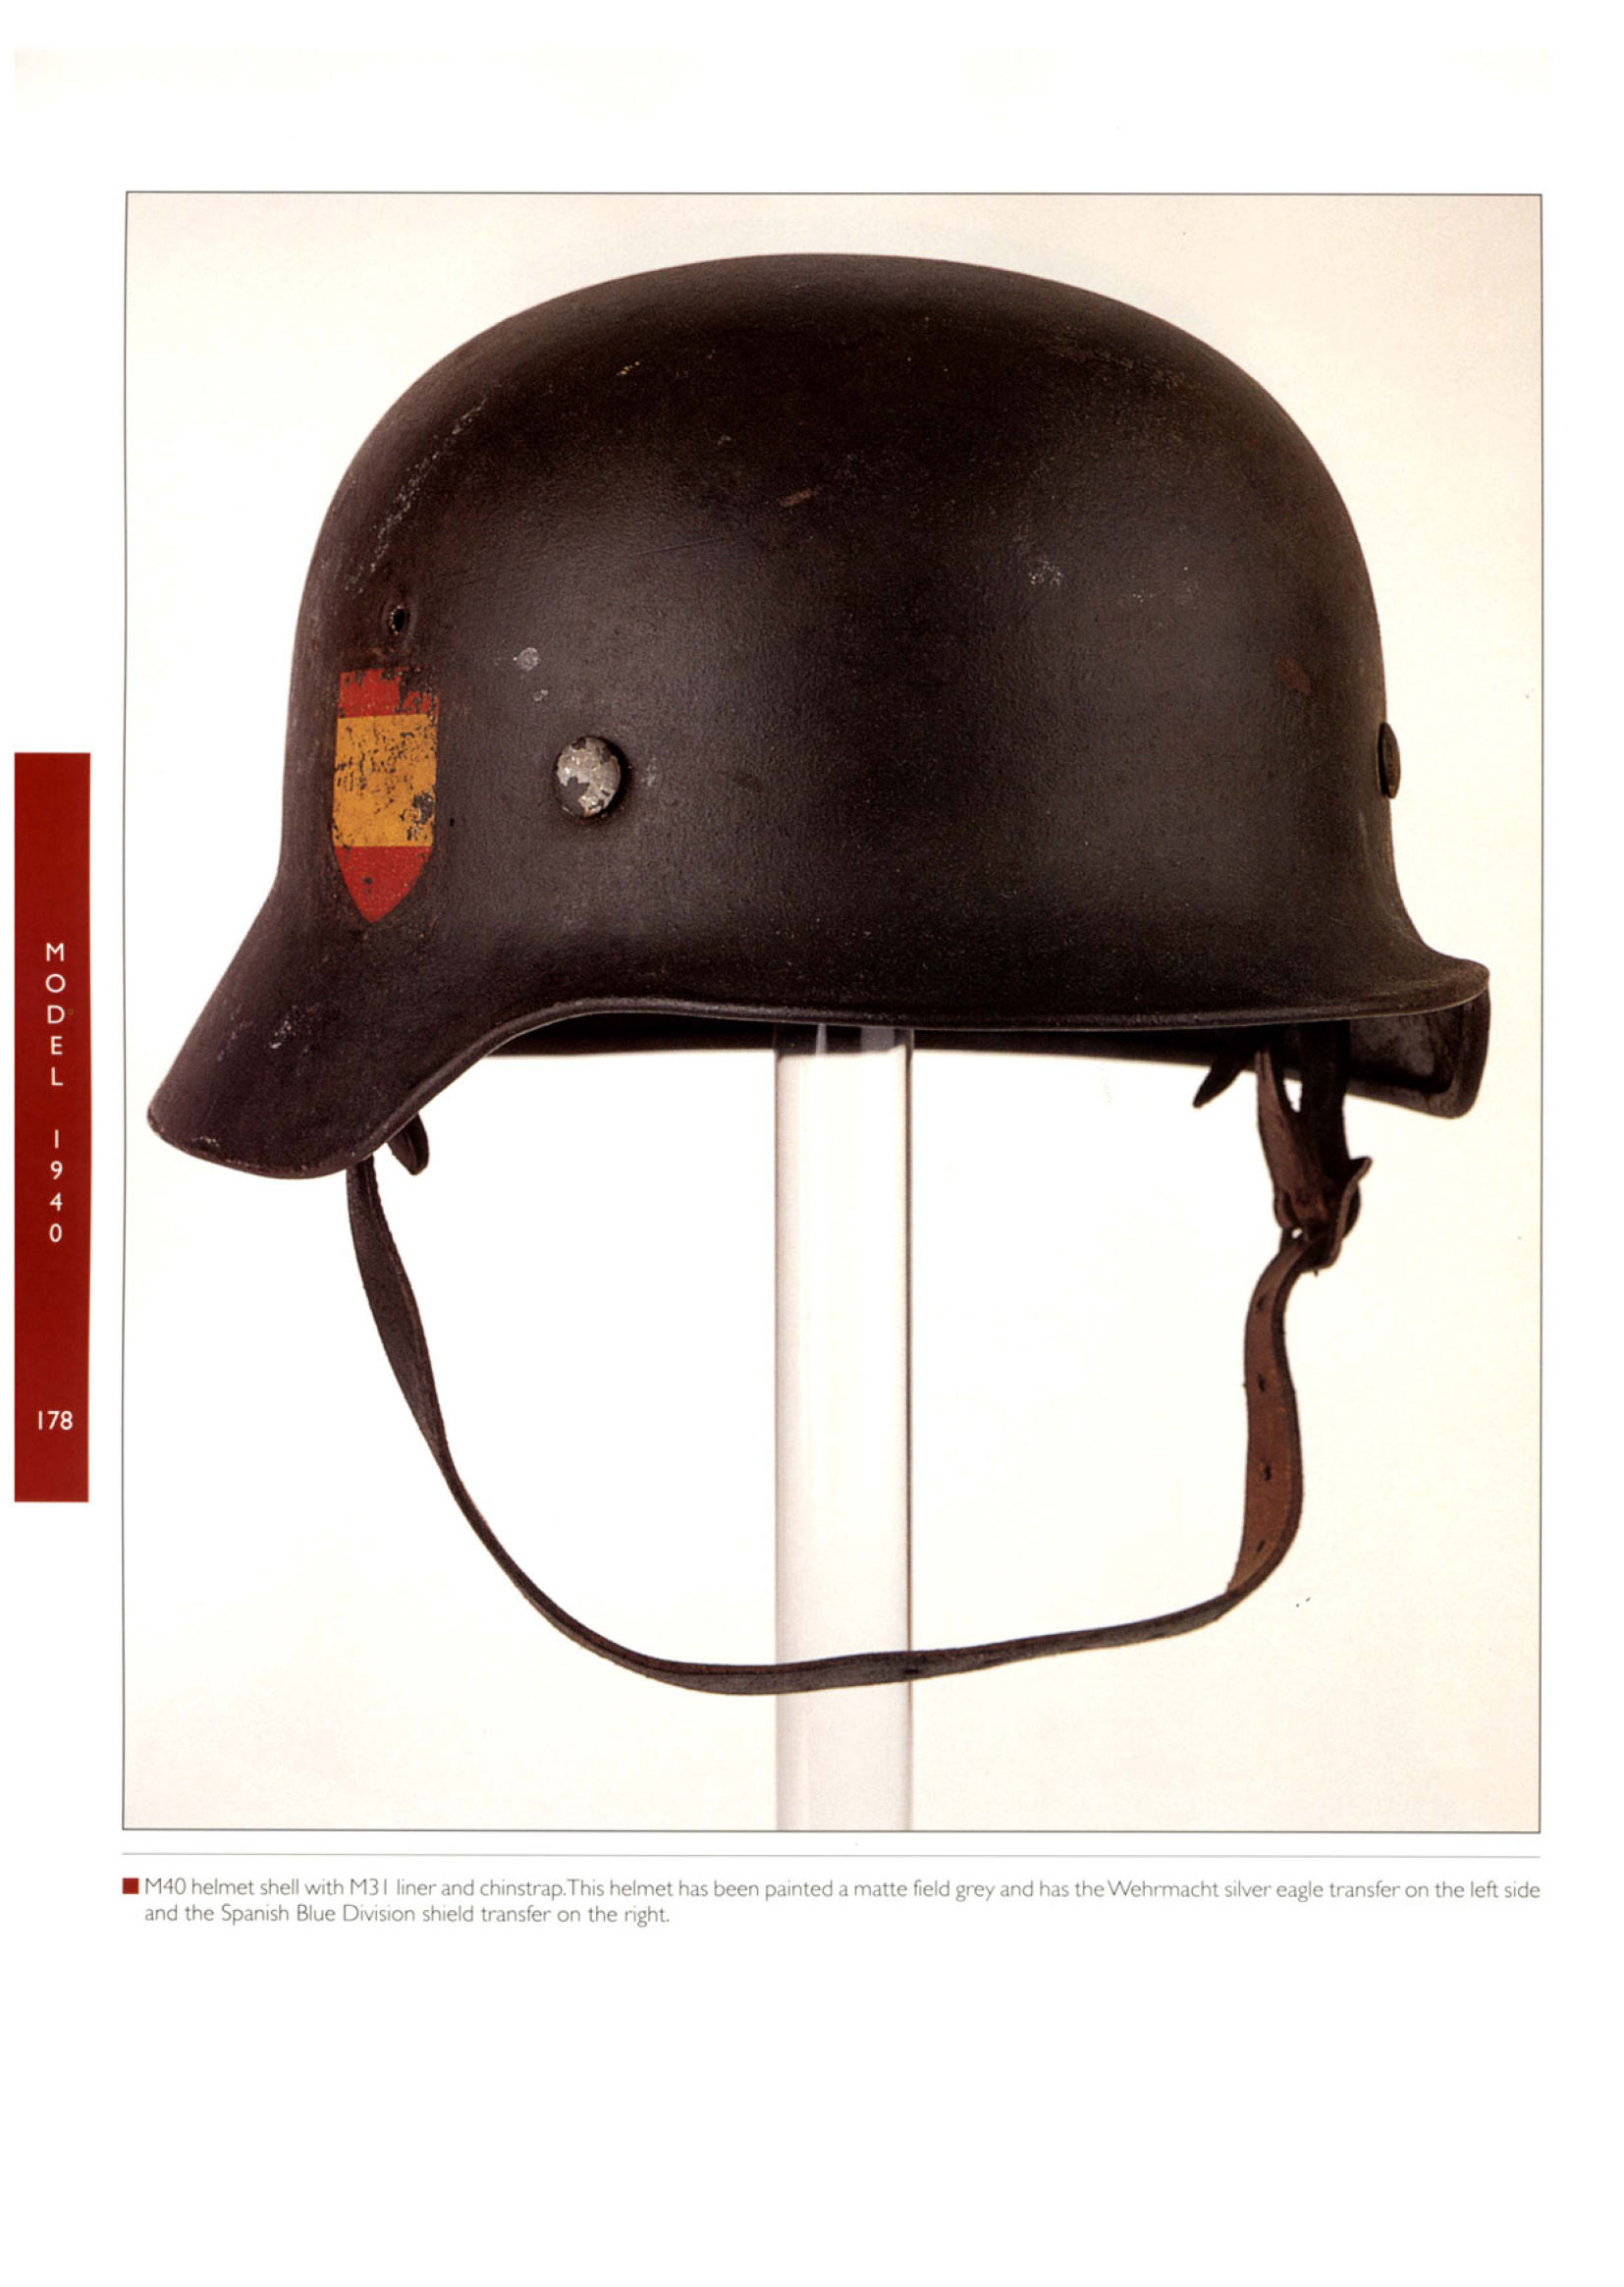 German Helmets of the Second World War-178.jpg